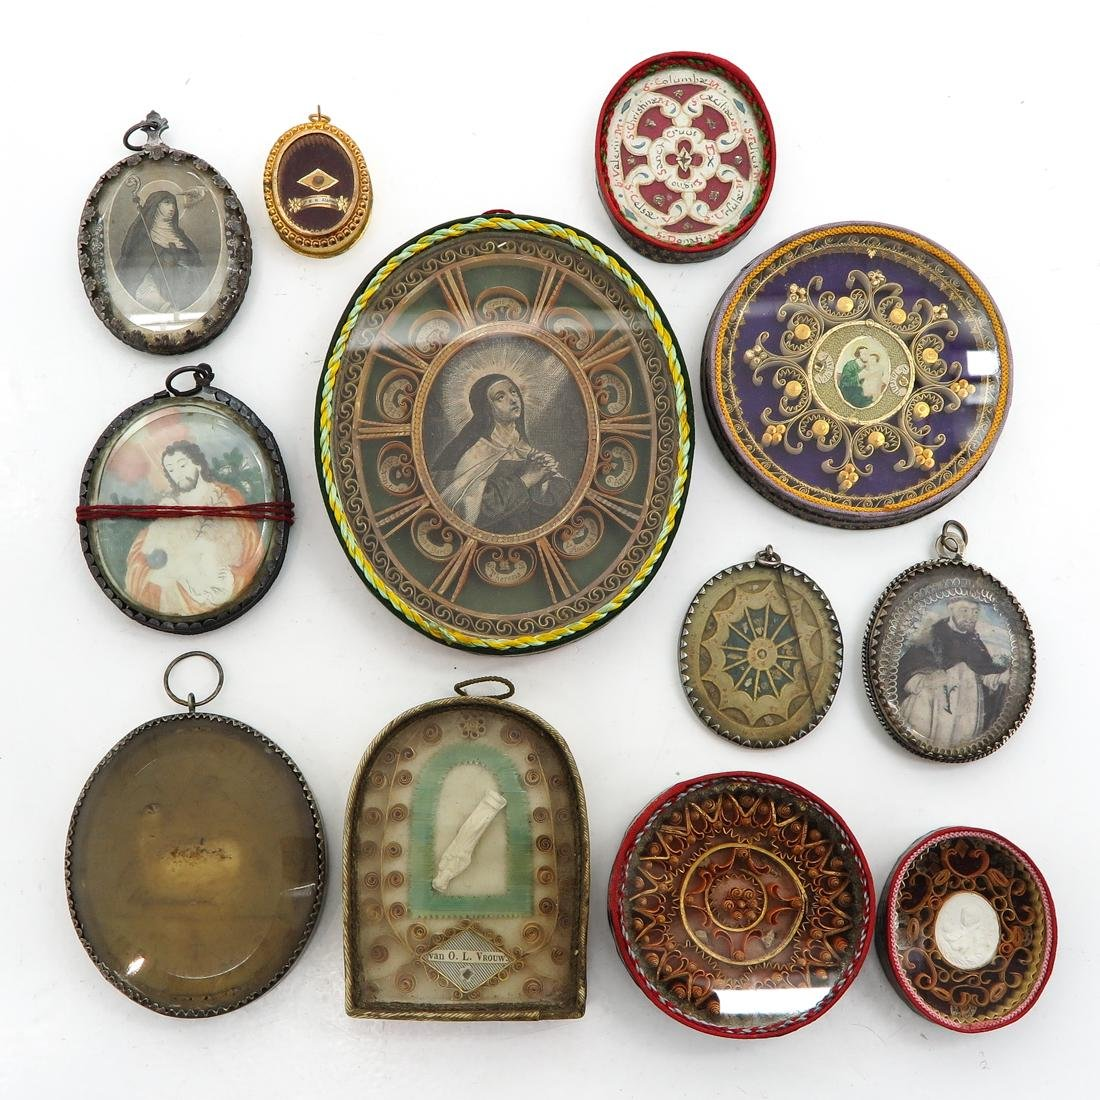 A Nice Diverse Collection of 12 Relics